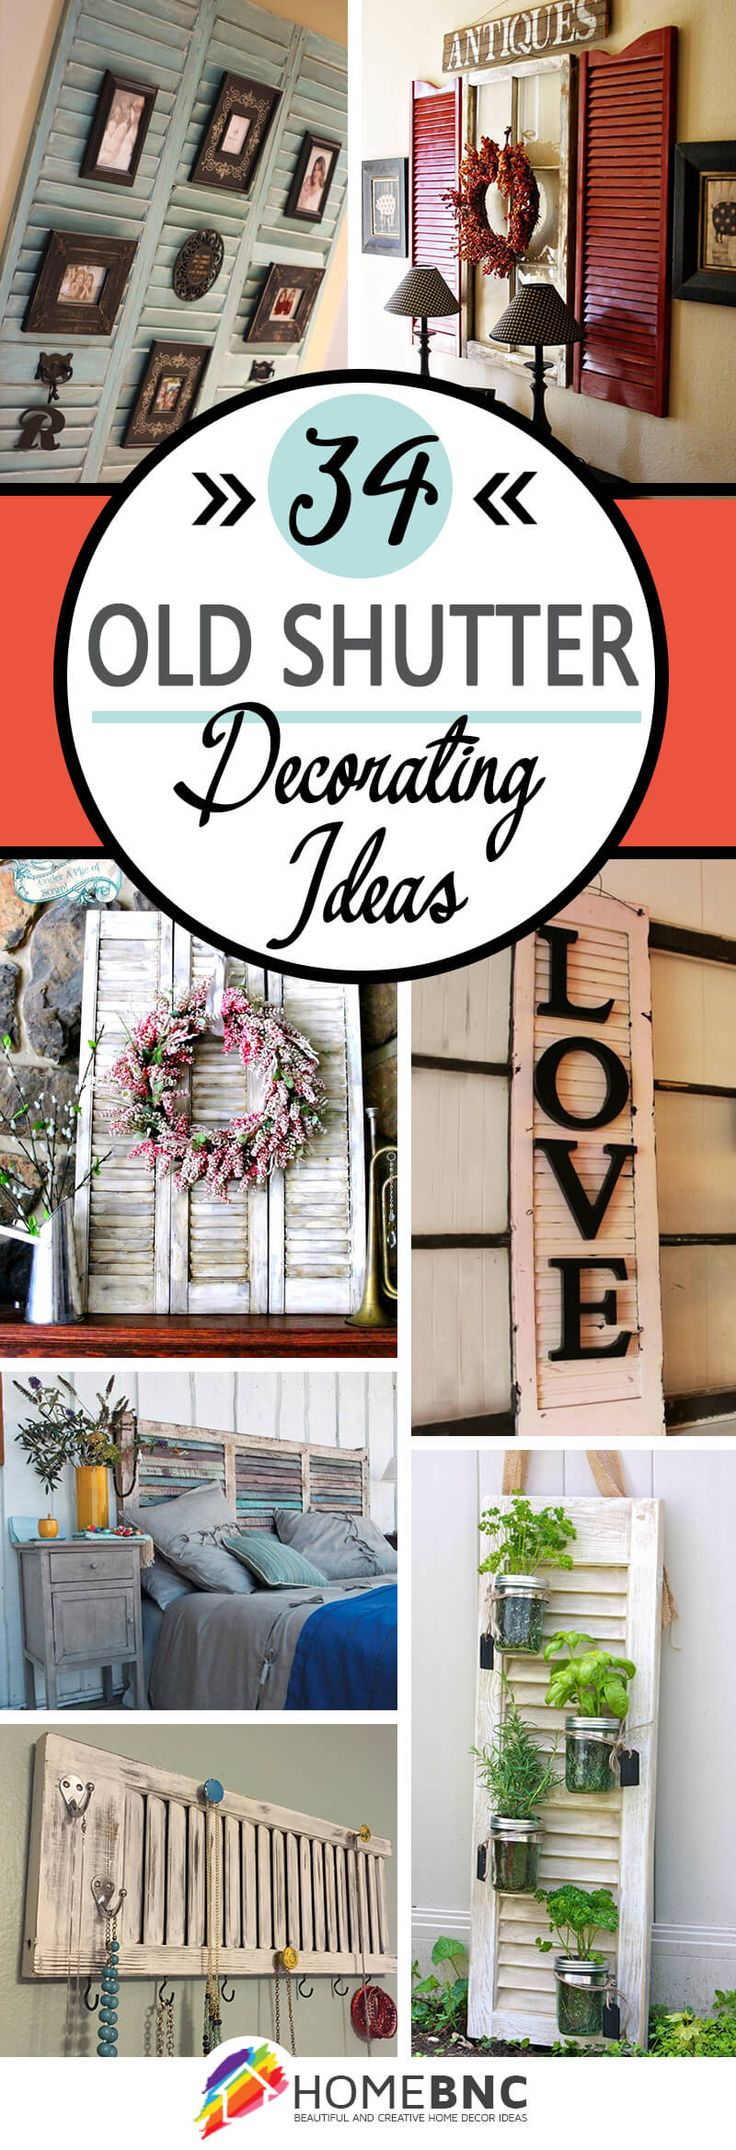 old shutters can make your home charming decorating shutters shutter